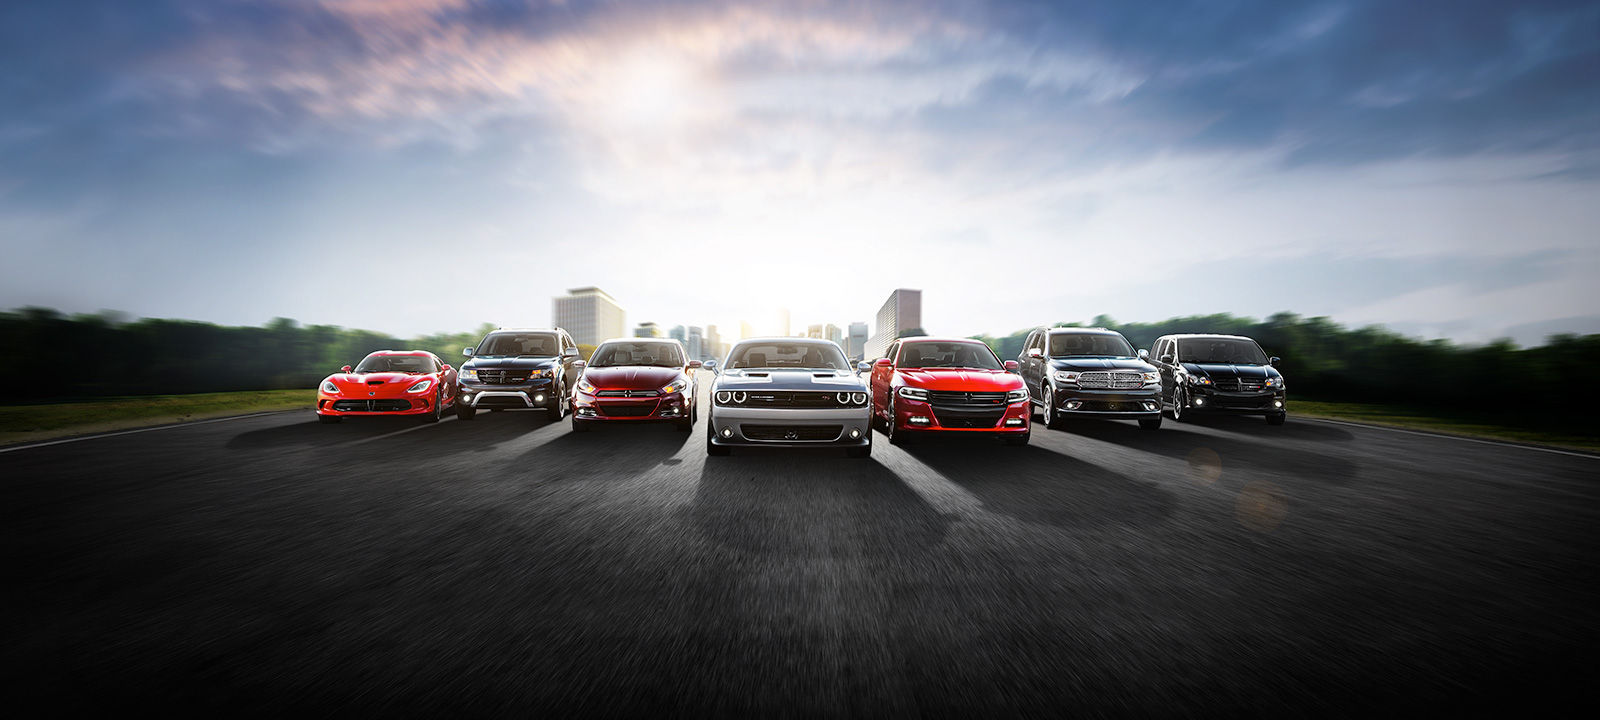 North Oaks Chrysler, Dodge, Jeep, RAM Dealer